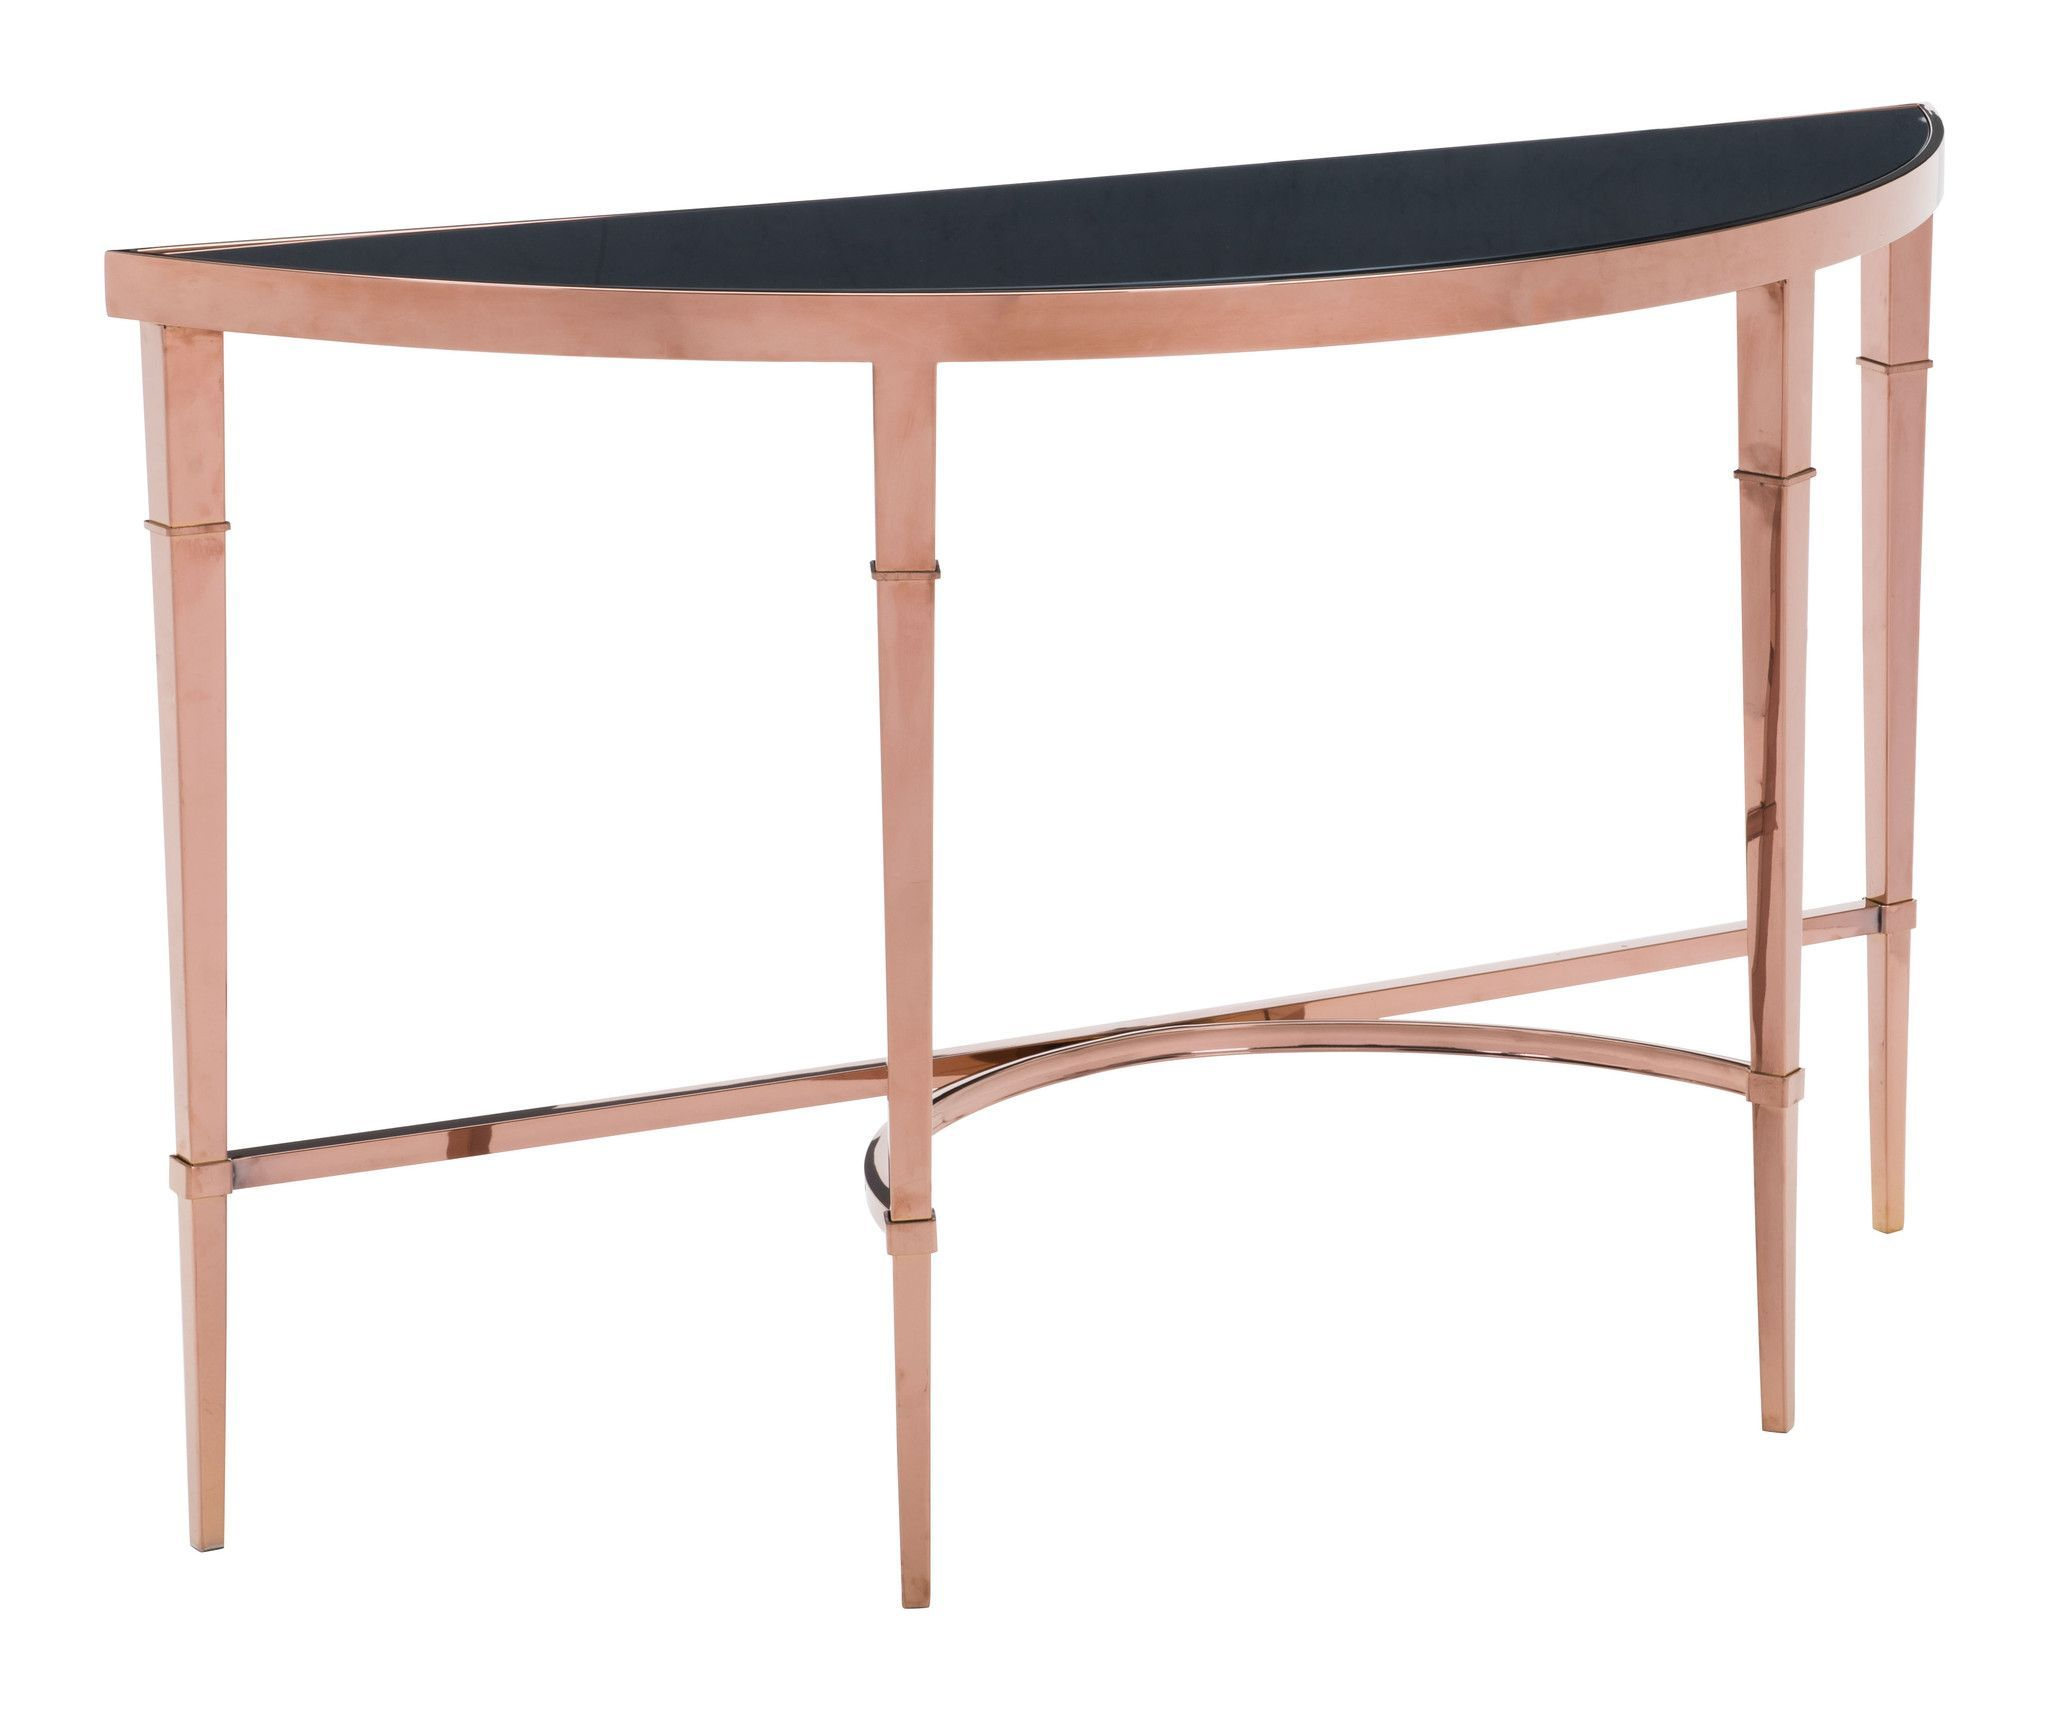 Elite Console Table in Polished Rose Gold with Demilune Black Tempered Glass Top